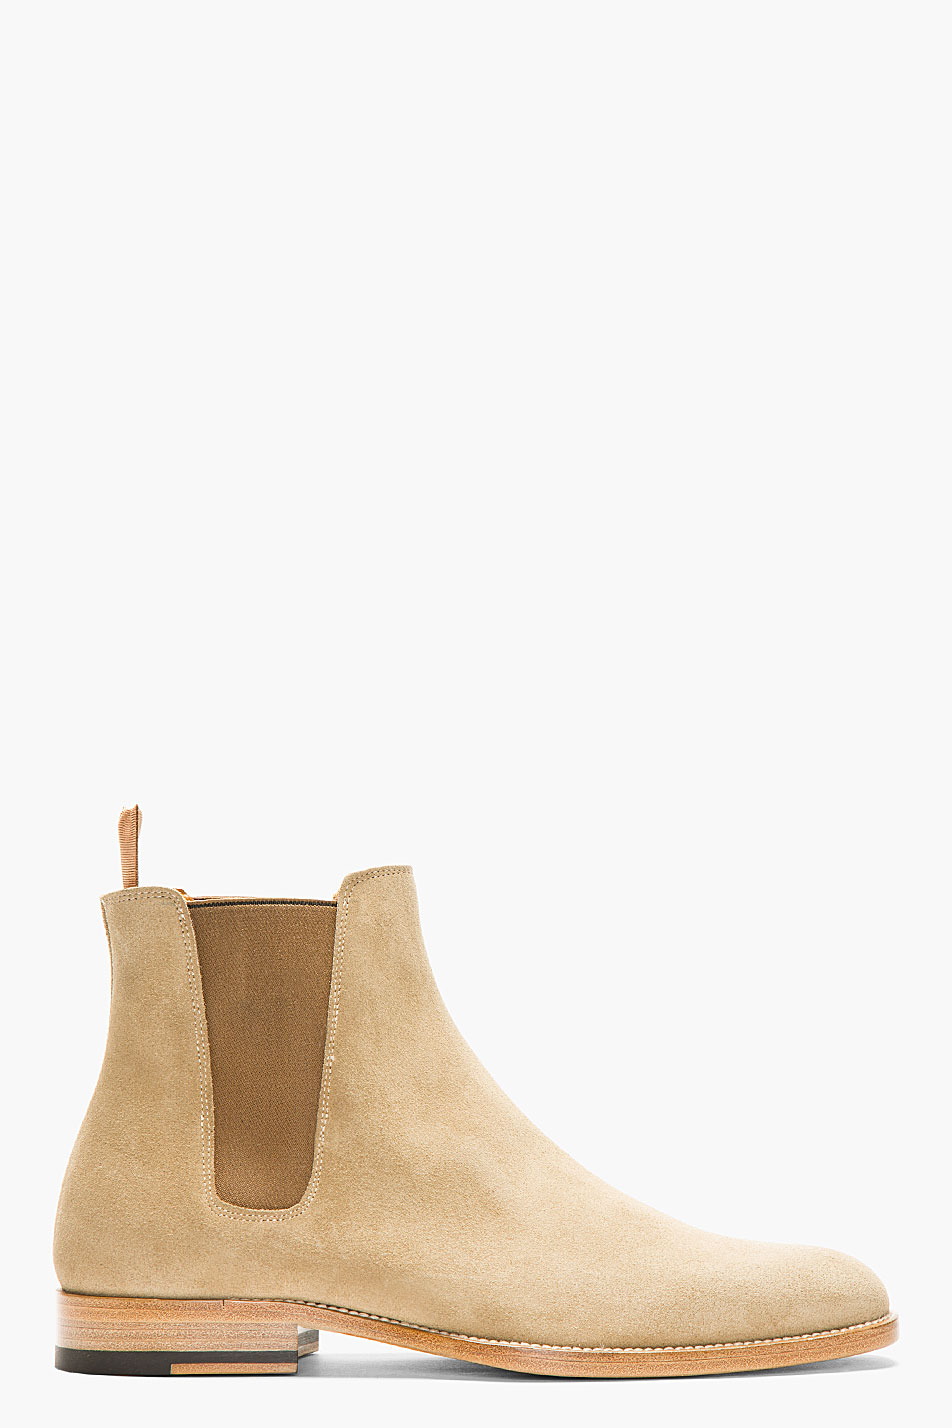 saint laurent tan suede chelsea boots. Black Bedroom Furniture Sets. Home Design Ideas